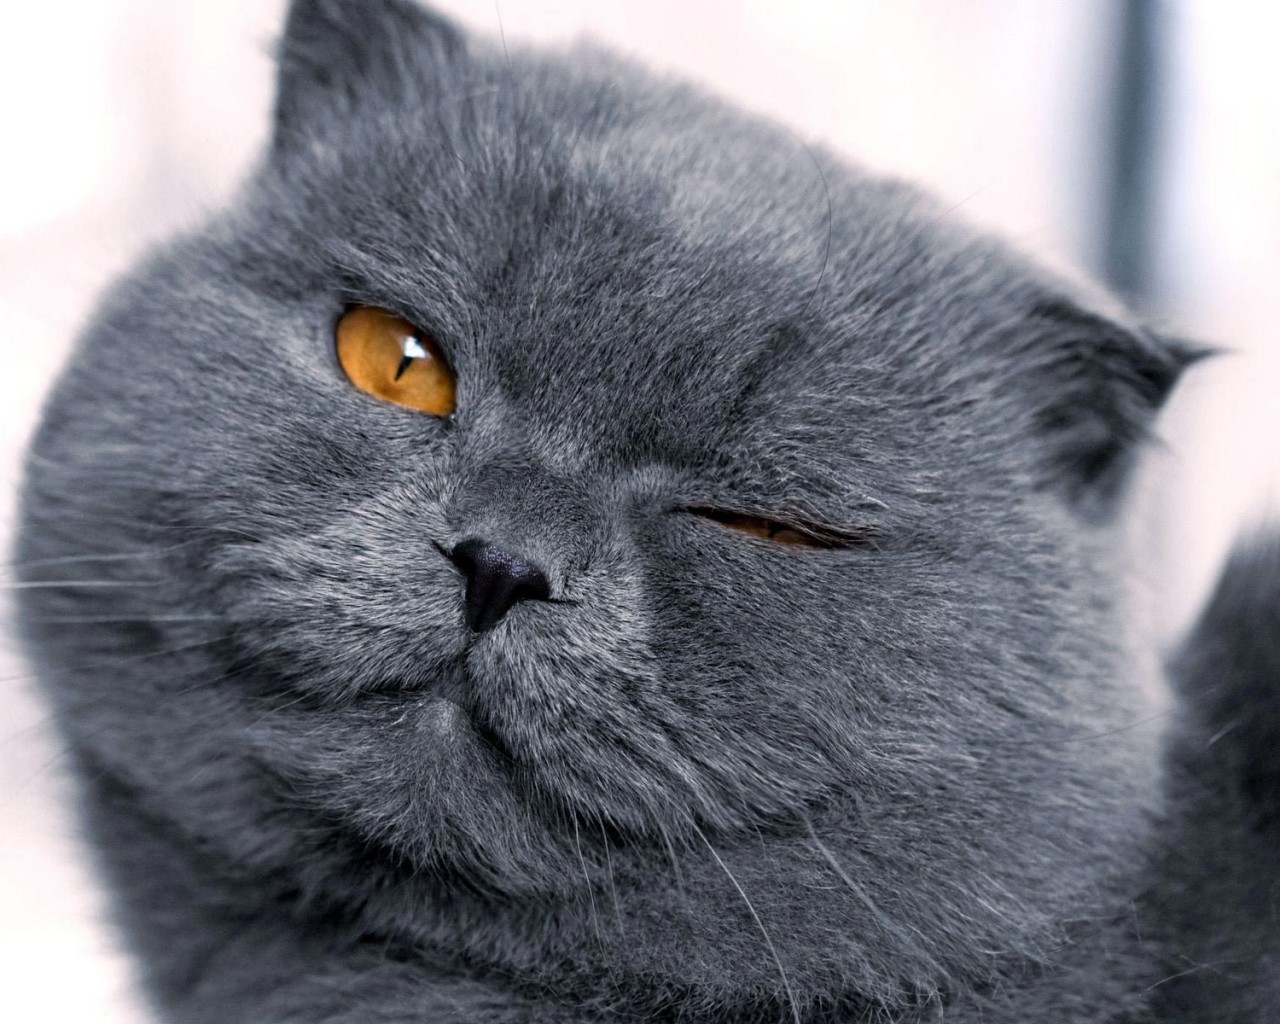 Winking Scottish Fold wallpaper